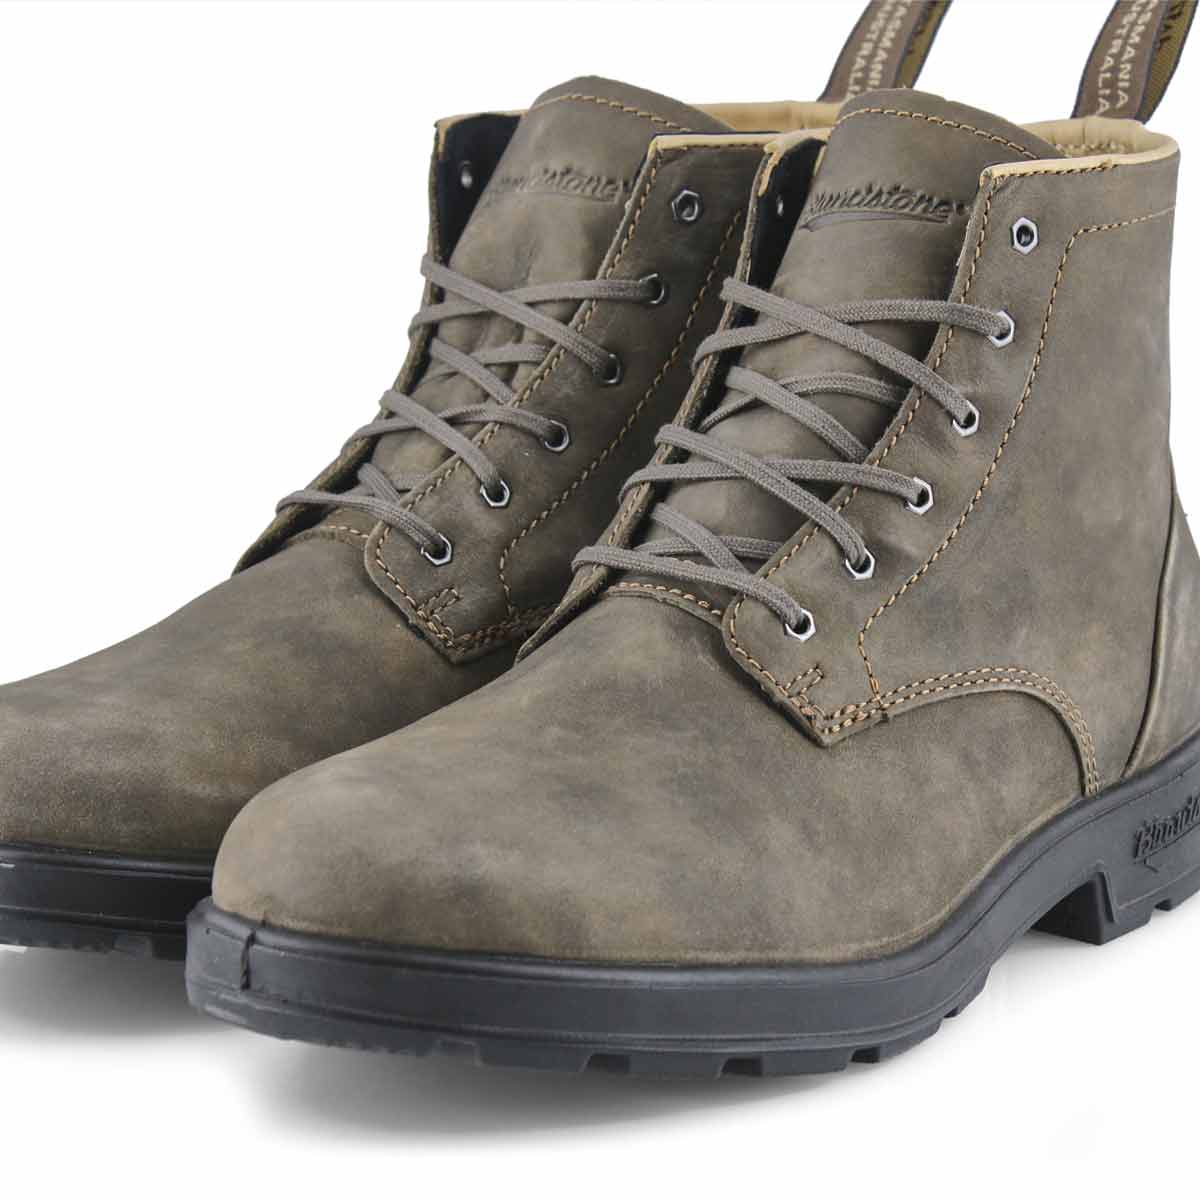 Mns Lace Up rustic brn ankle boot